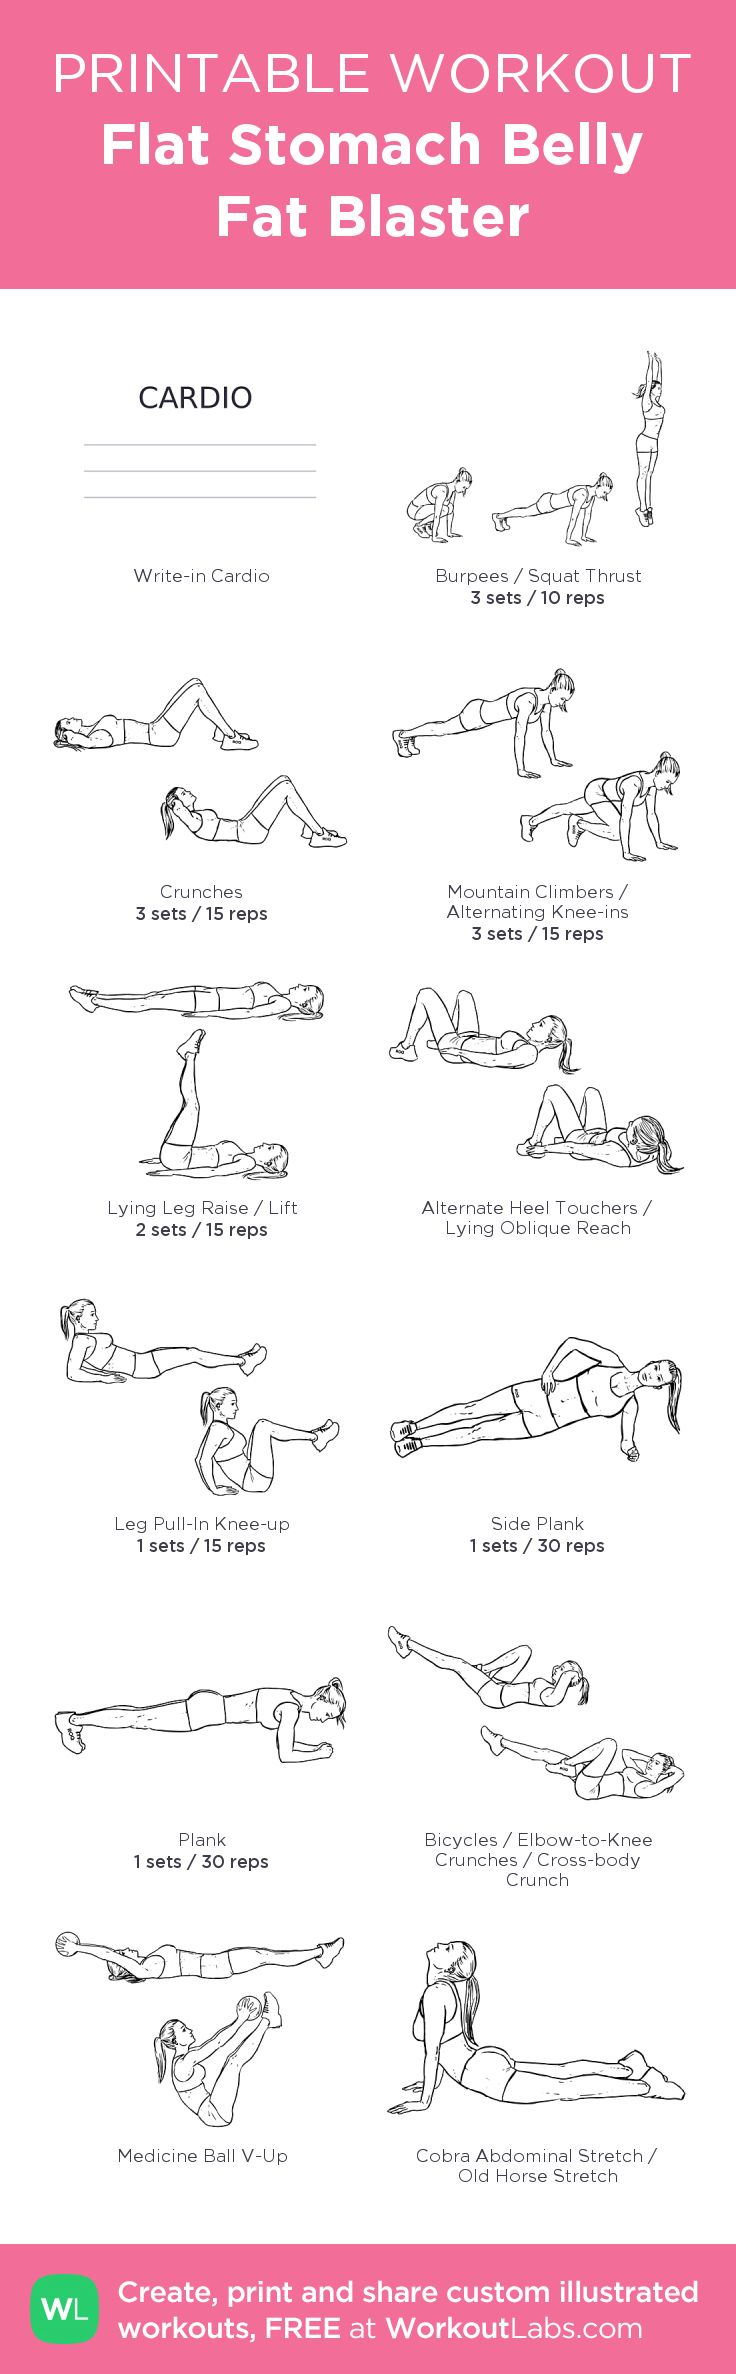 Custom AB workout